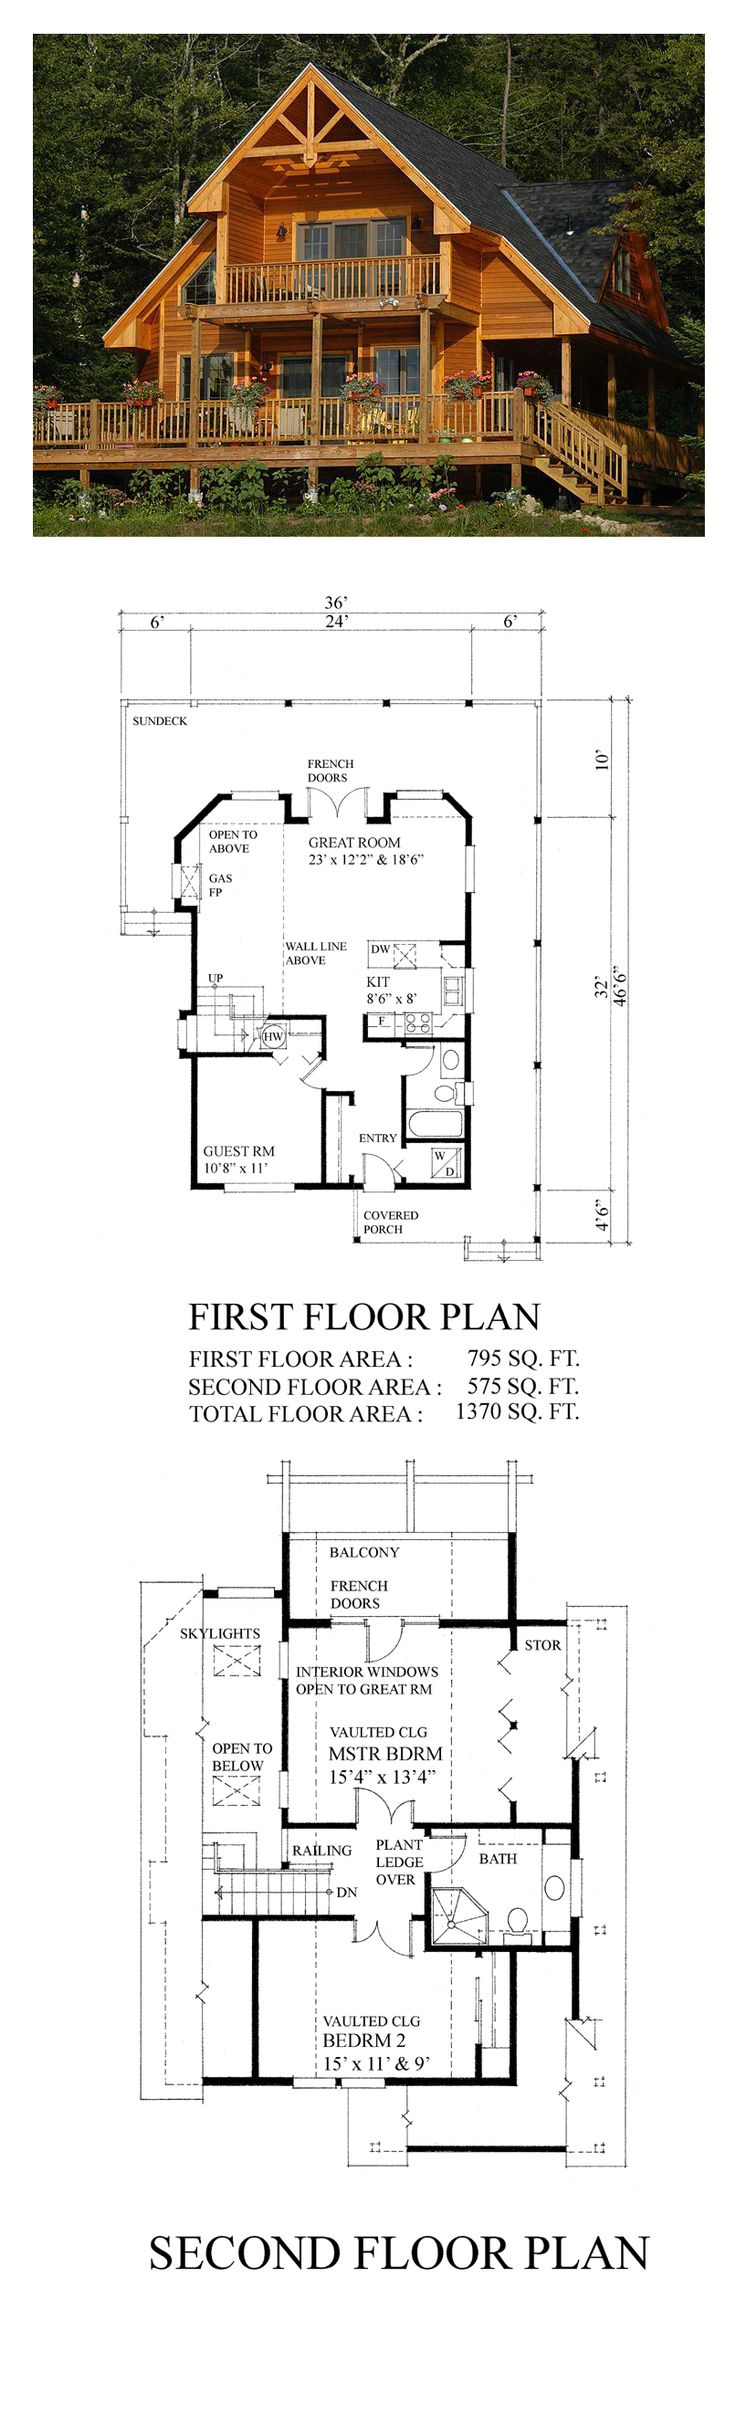 16 best saltbox house plans images on pinterest cool house plans 16 best saltbox house plans images on pinterest cool house plans cool houses and saltbox houses